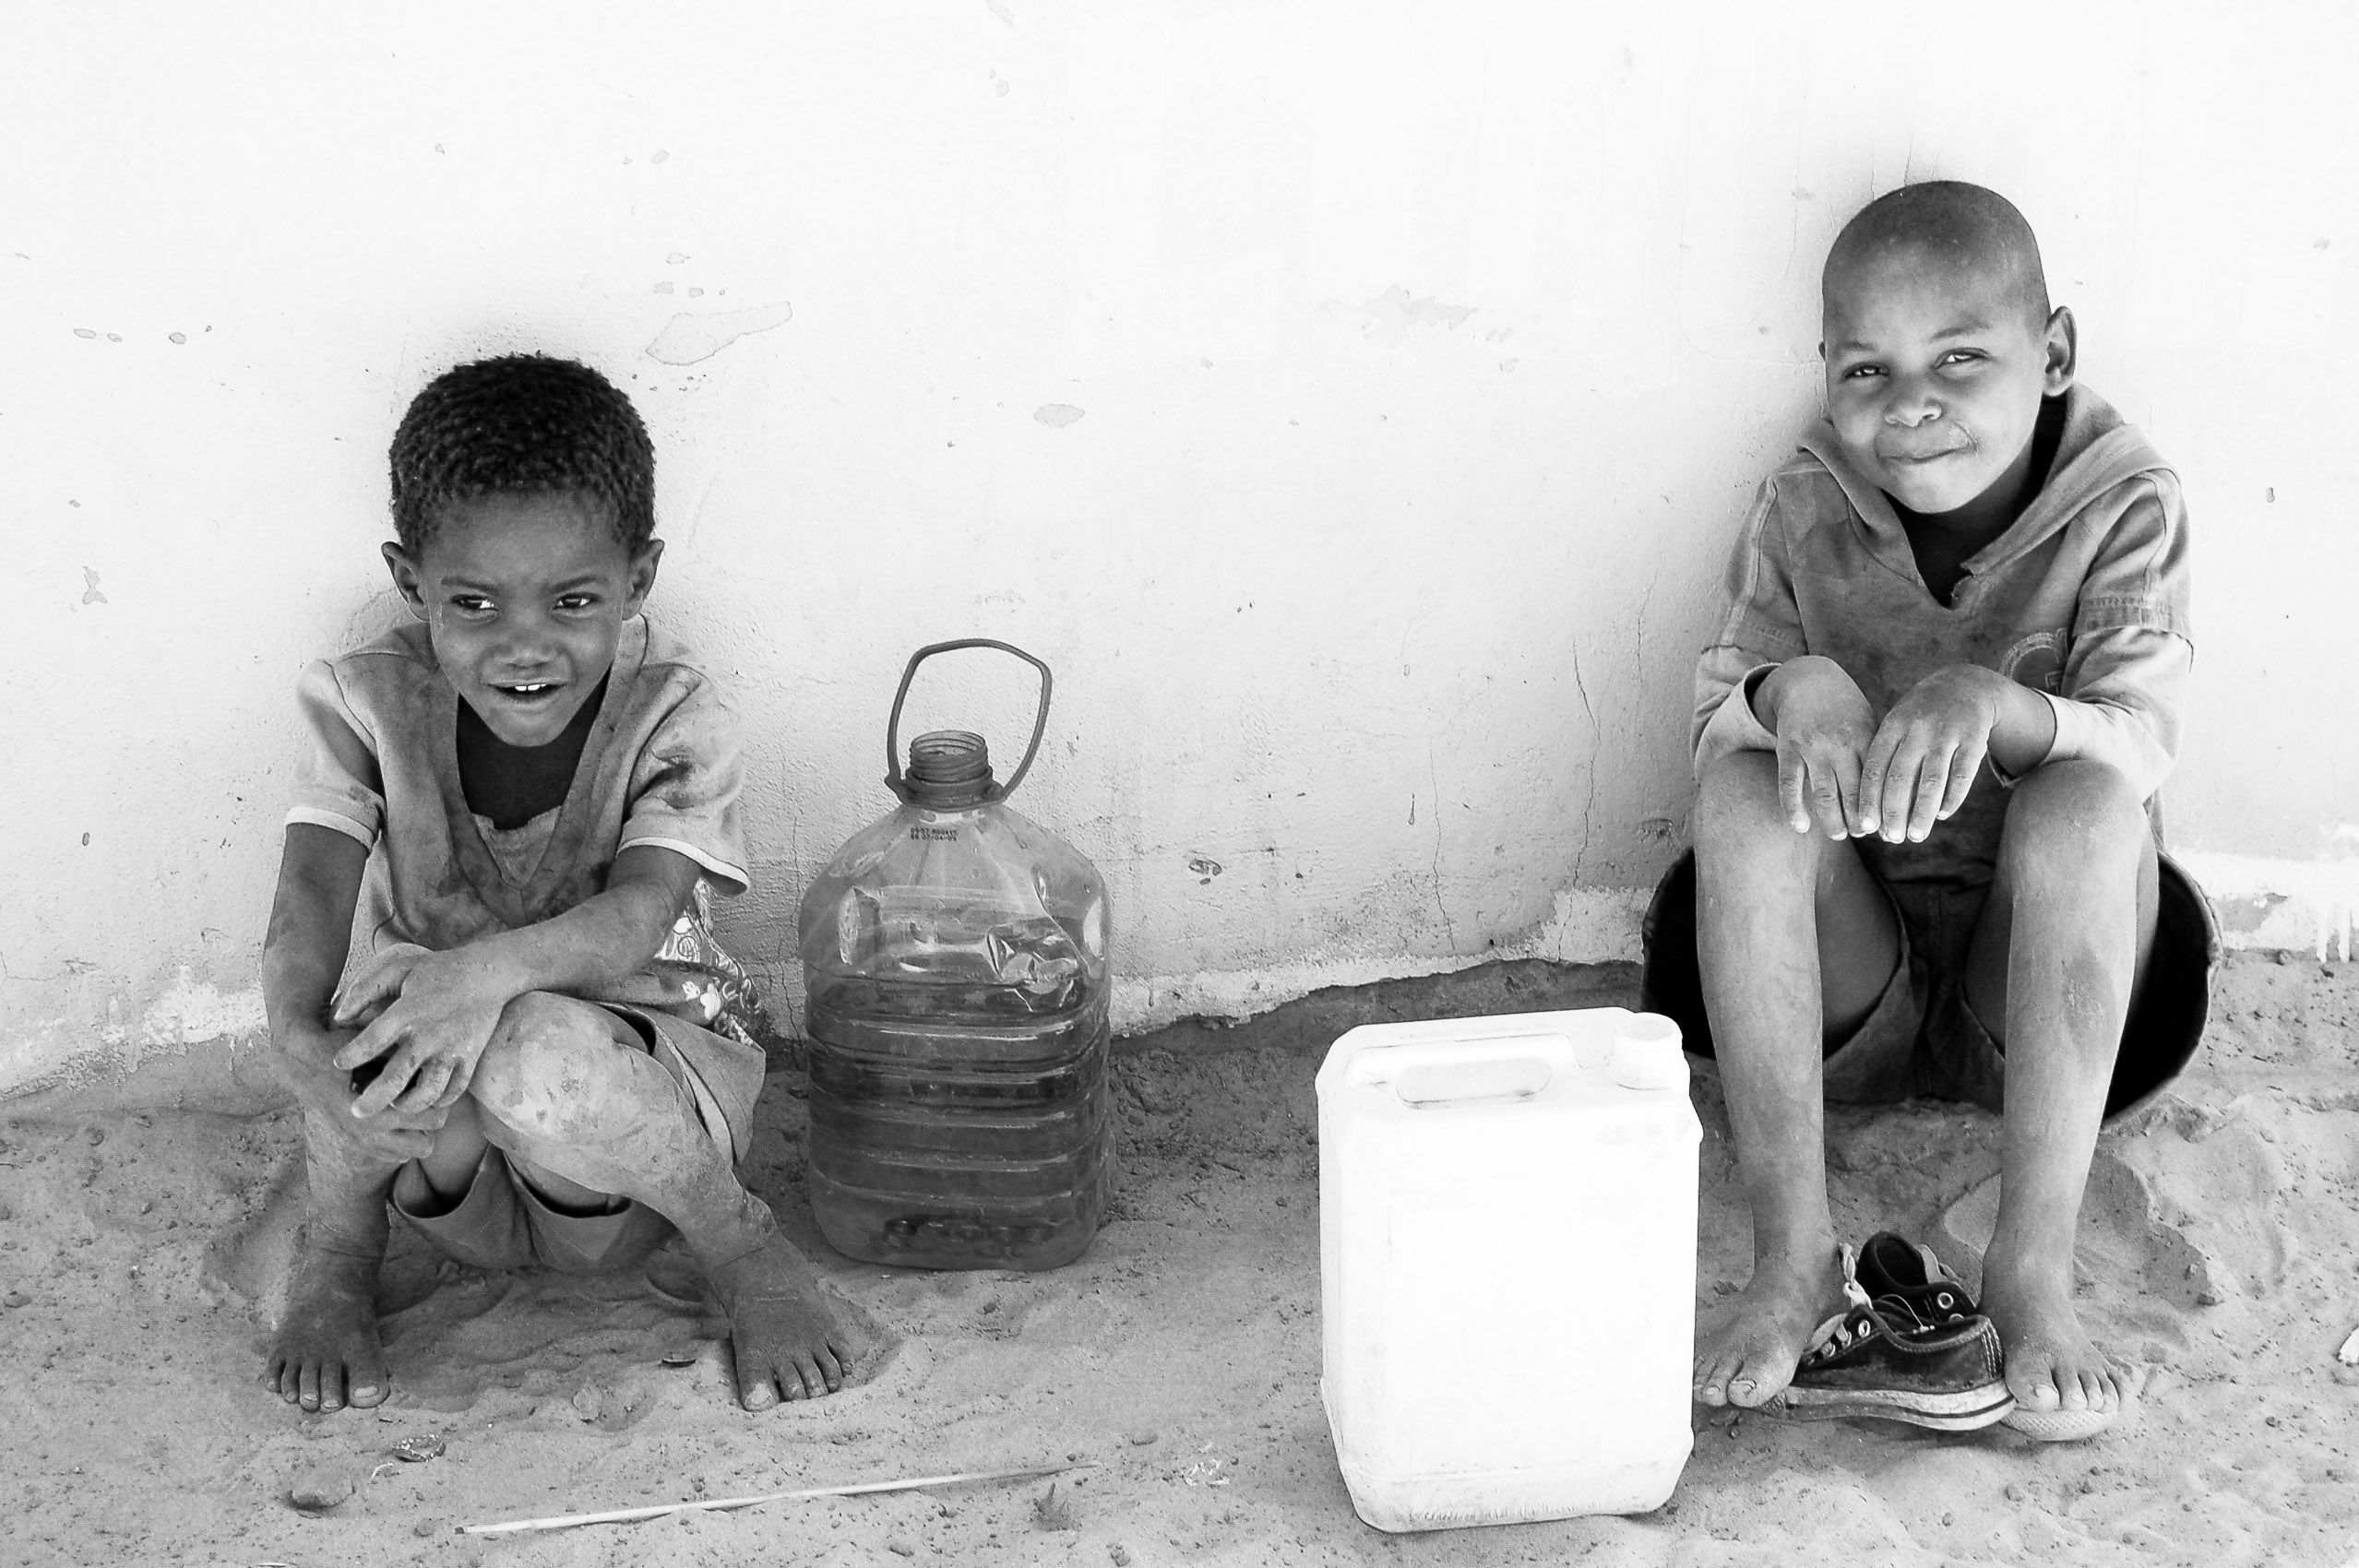 botswana_boys_water_rural.jpg